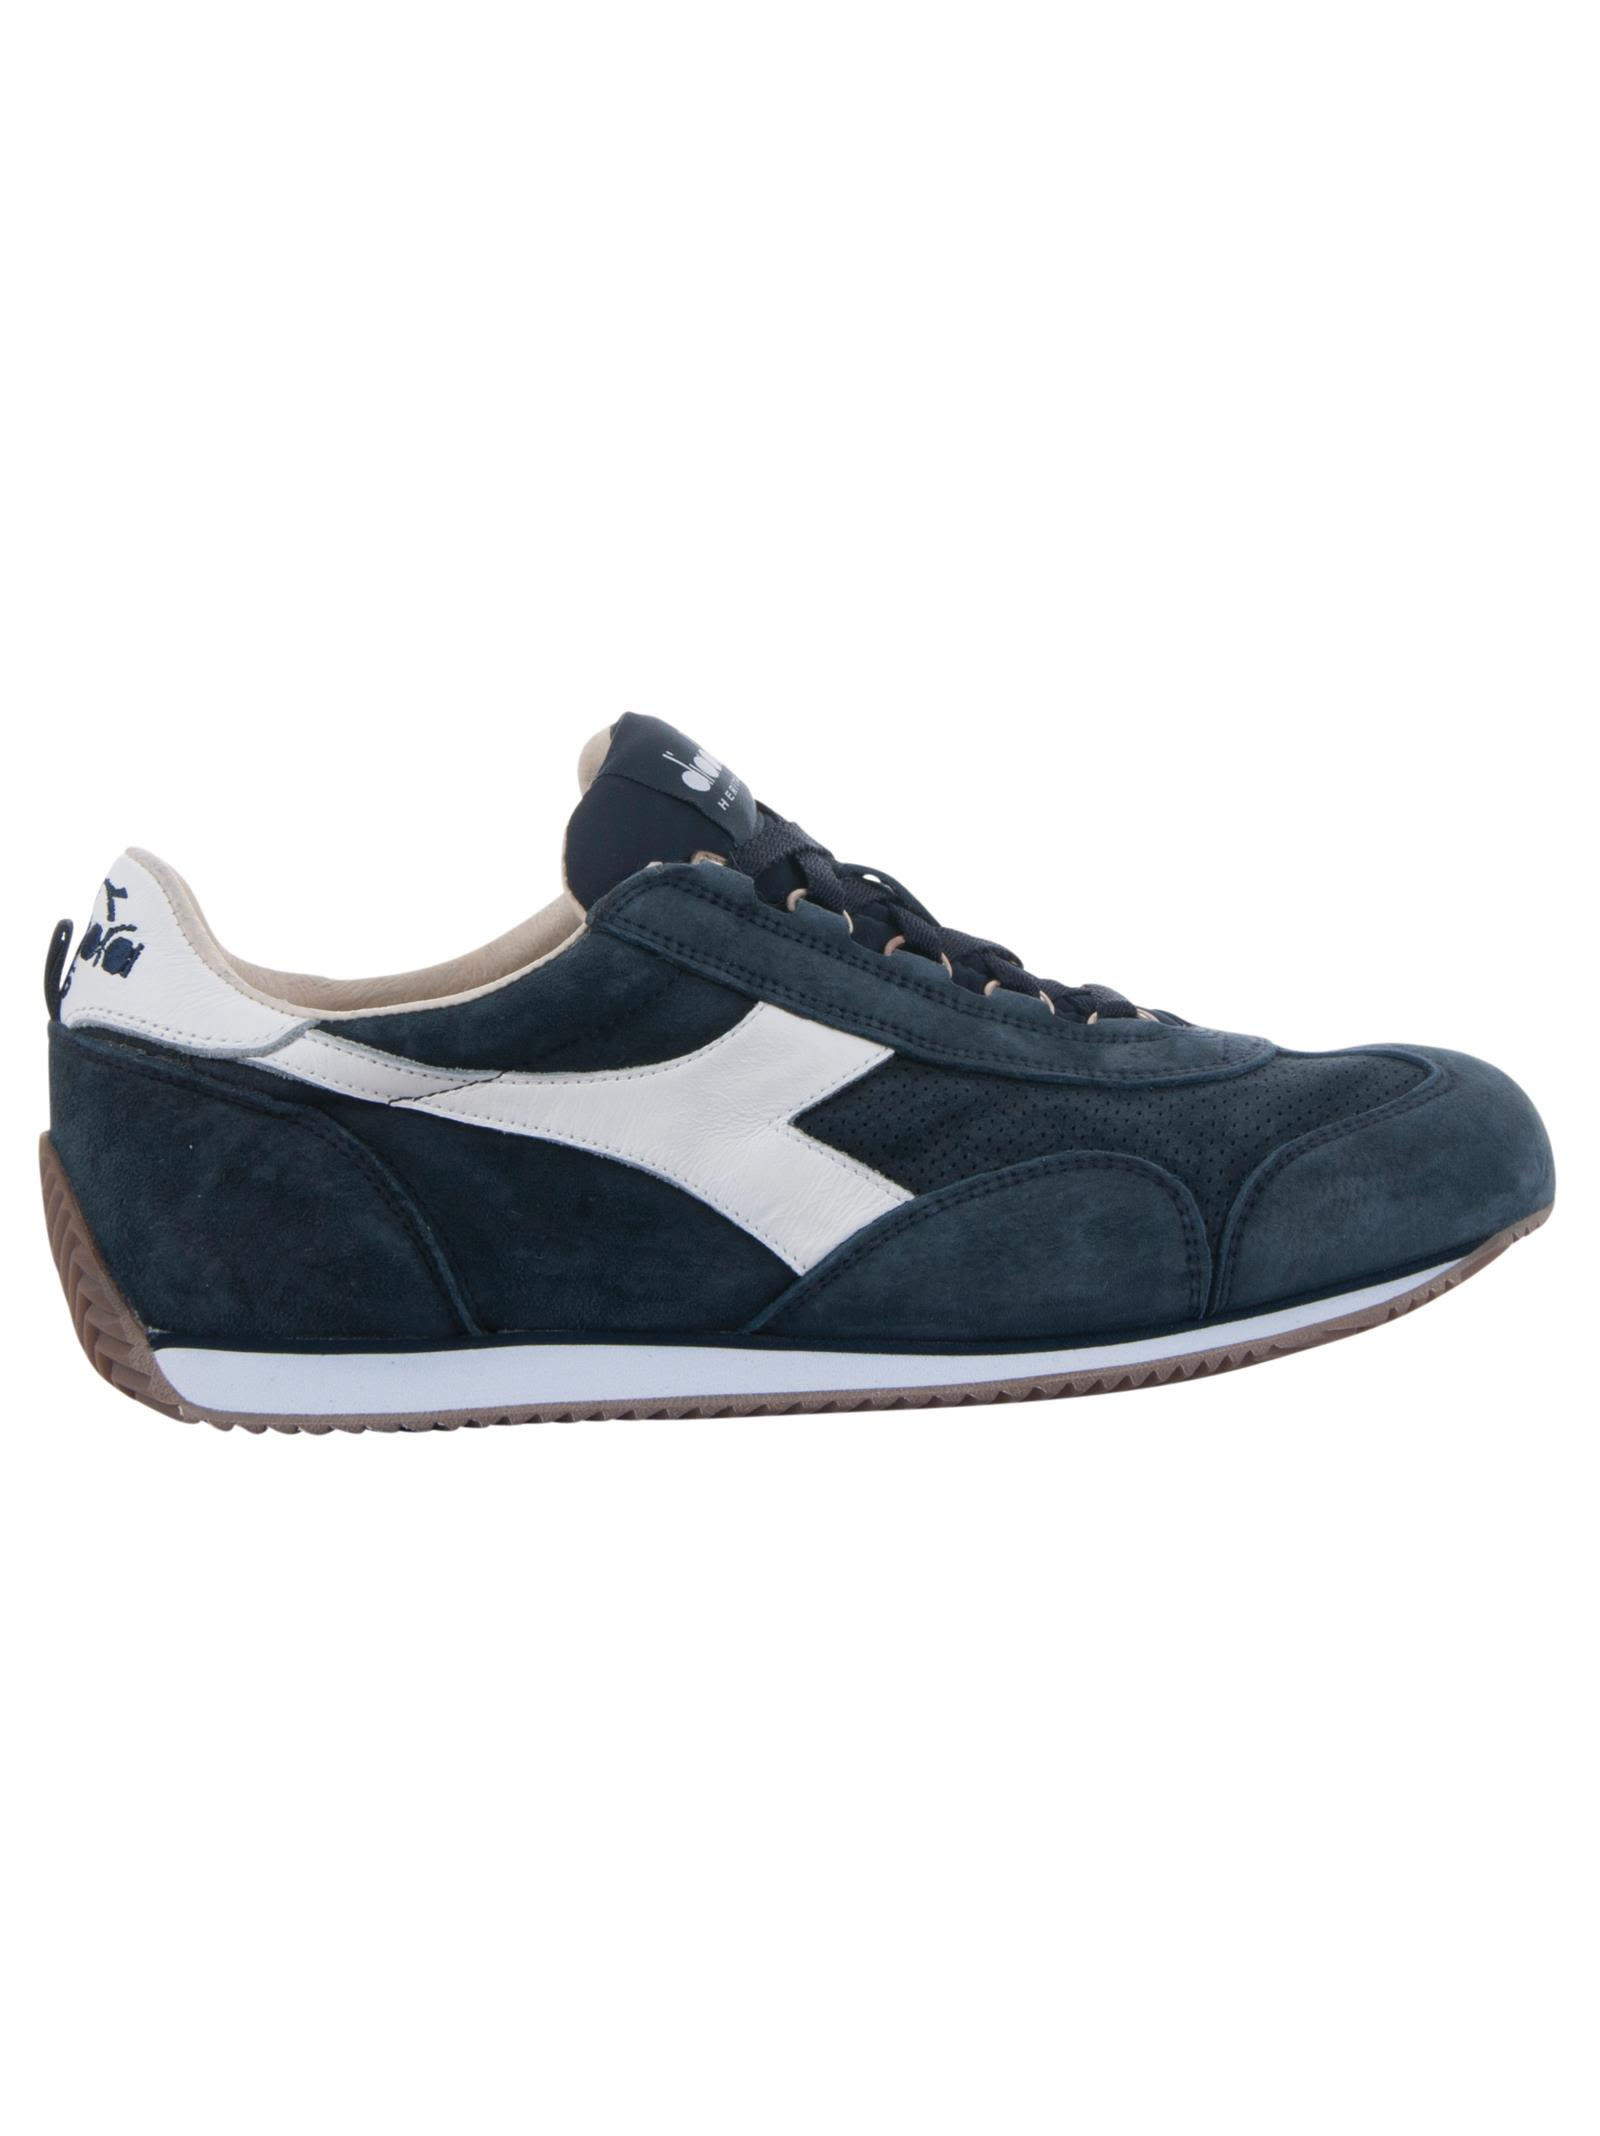 DIADORA Men'S Shoes Leather Trainers Sneakers Equipe S Sw 18 in Blue